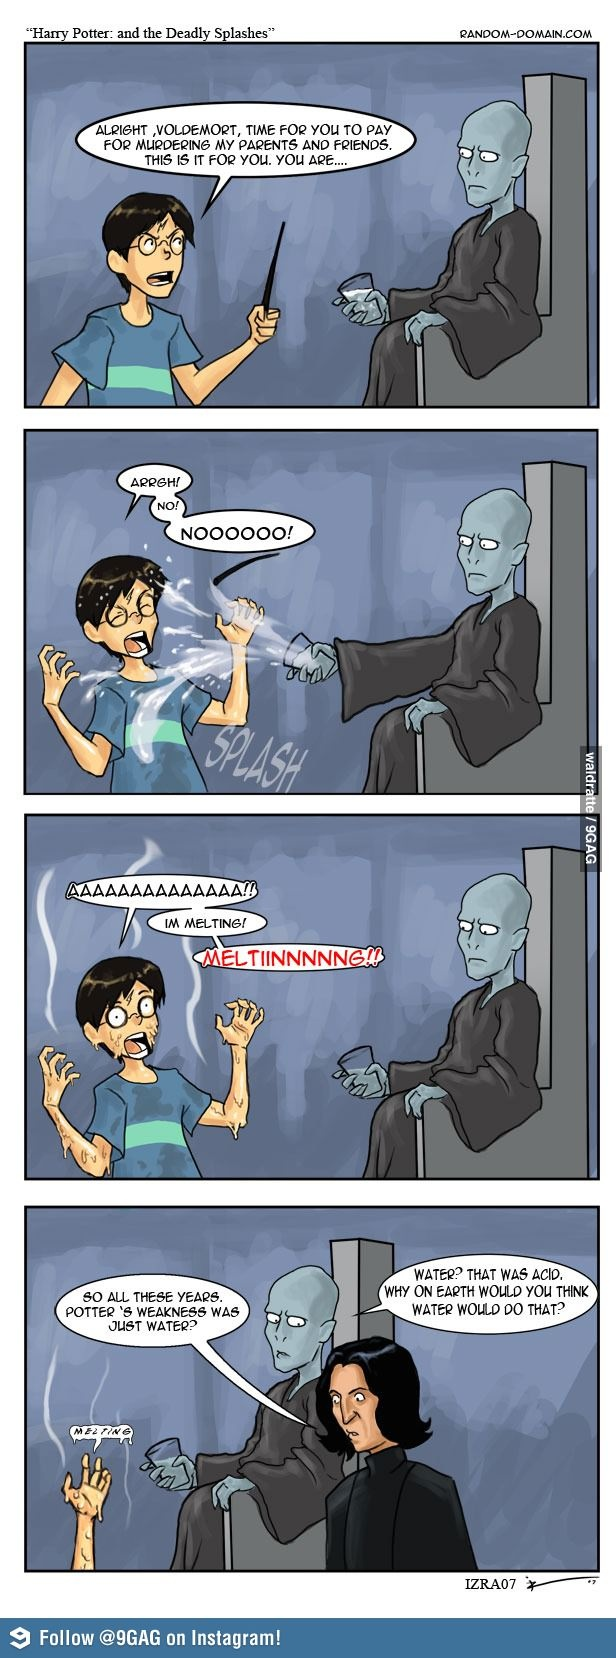 The secret of Harry Potter's weakness revealed!! Hahaha!